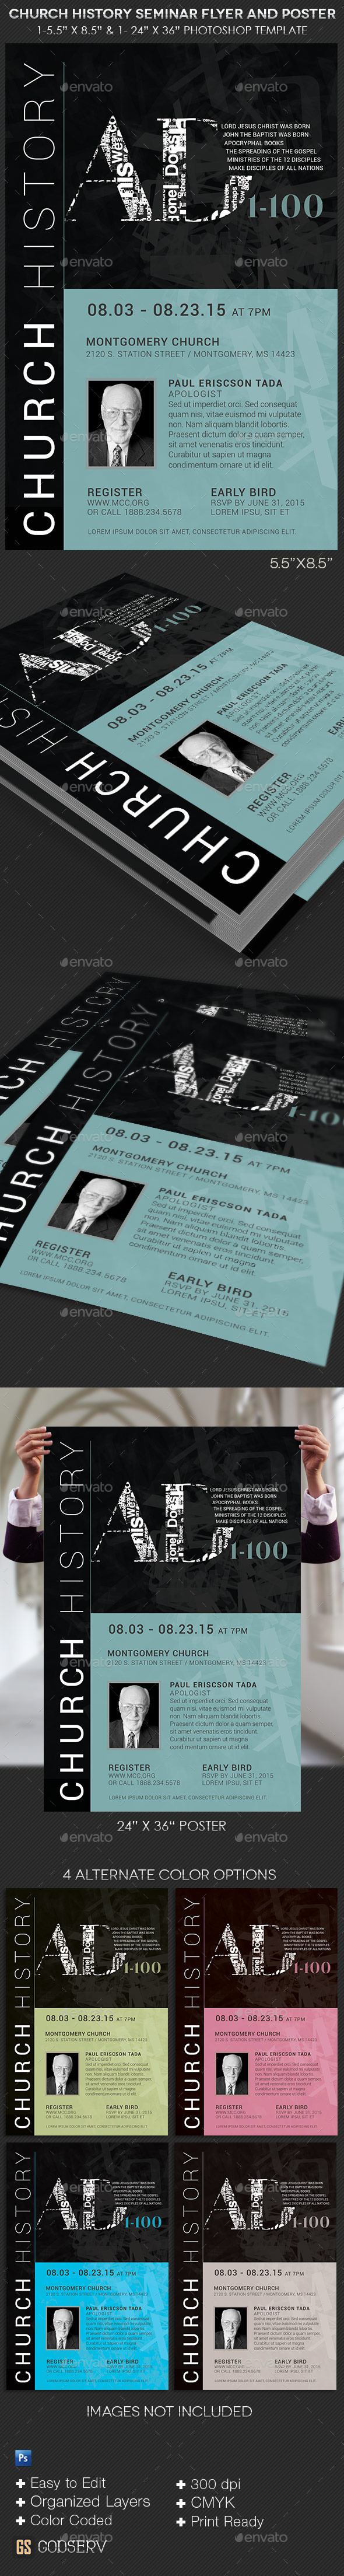 GraphicRiver Church History Seminar Flyer and Poster Template 10958388